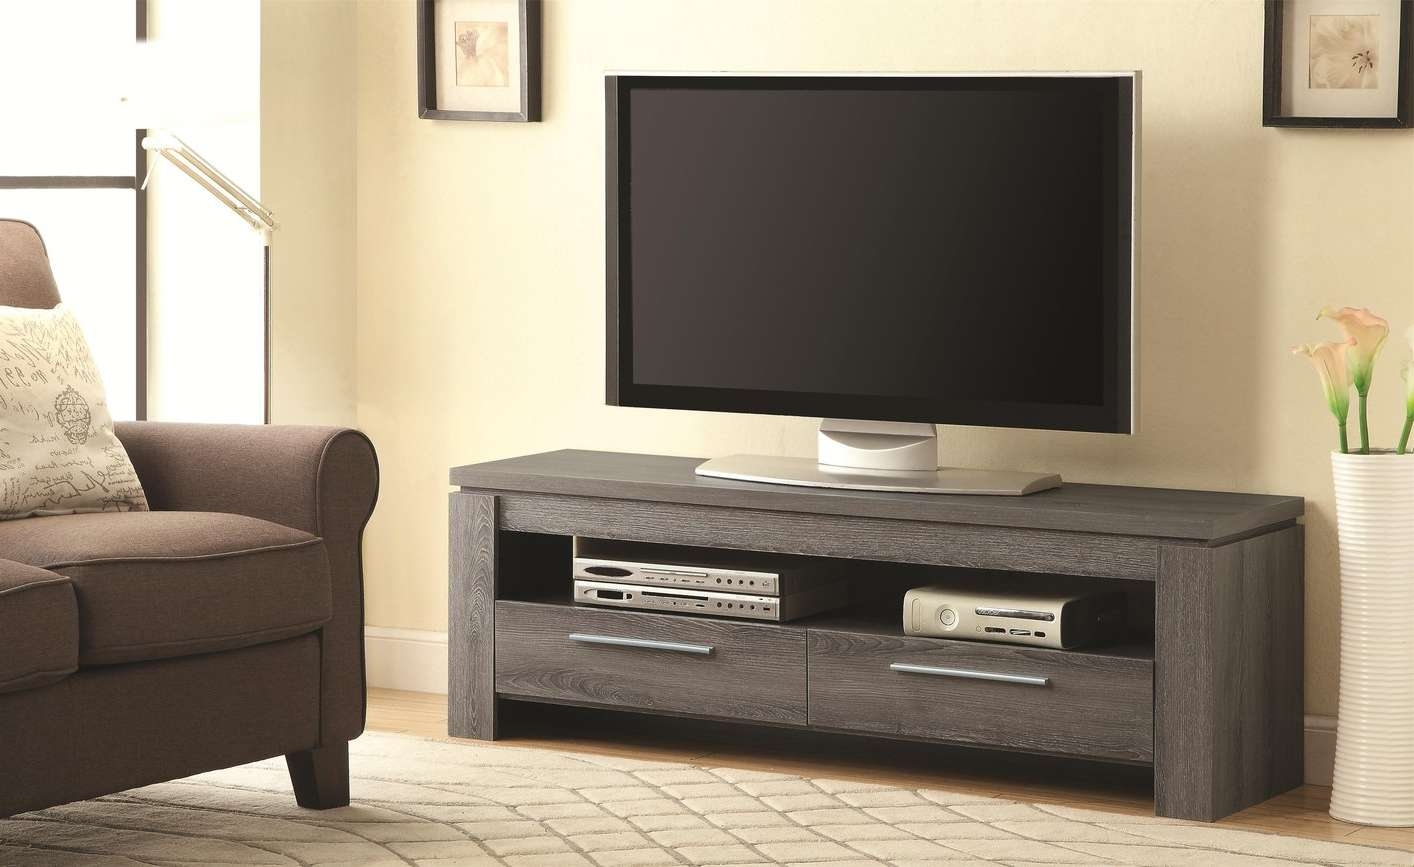 Grey Wood Tv Stand – Steal A Sofa Furniture Outlet Los Angeles Ca Pertaining To Grey Tv Stands (View 5 of 15)